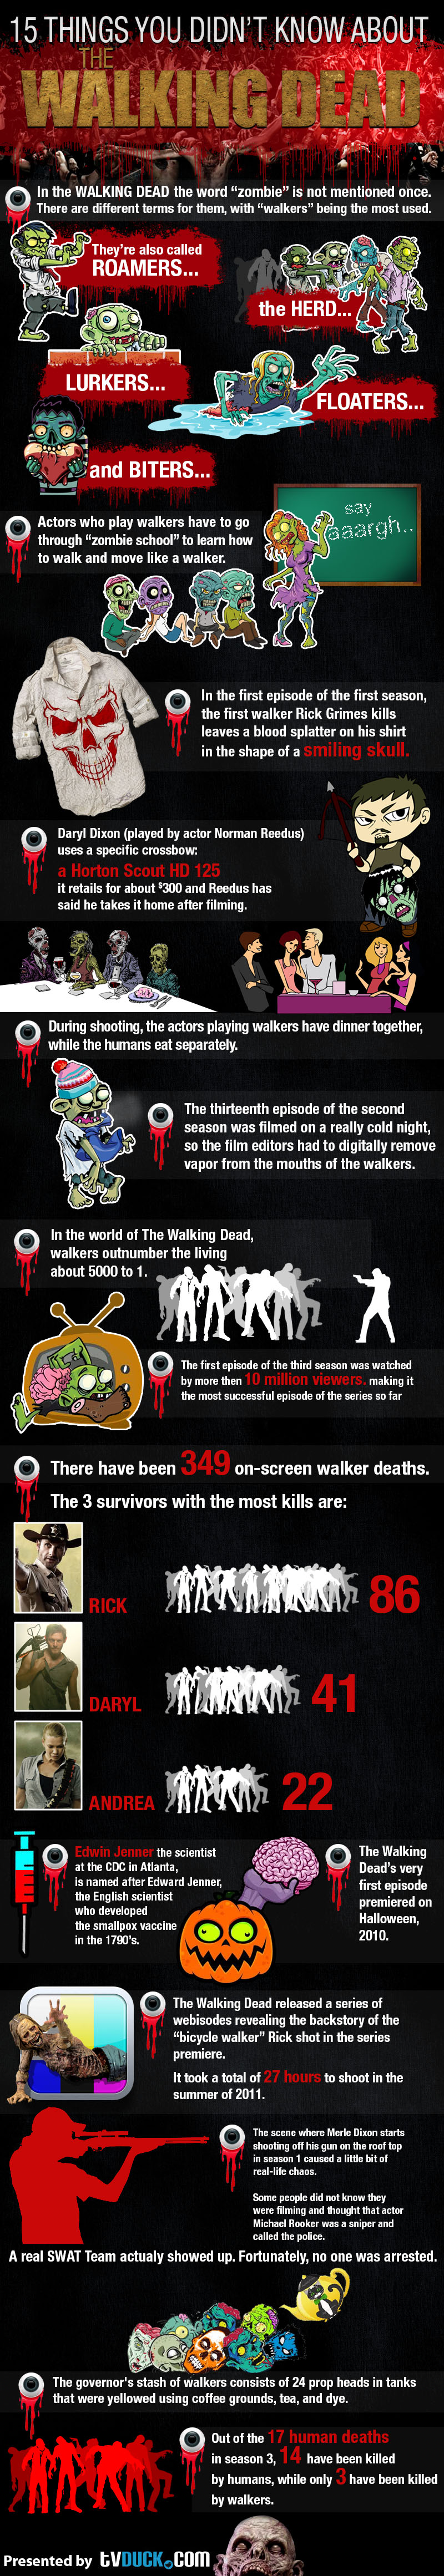 Walking-Dead-Infographiclarge-028347294.jpg